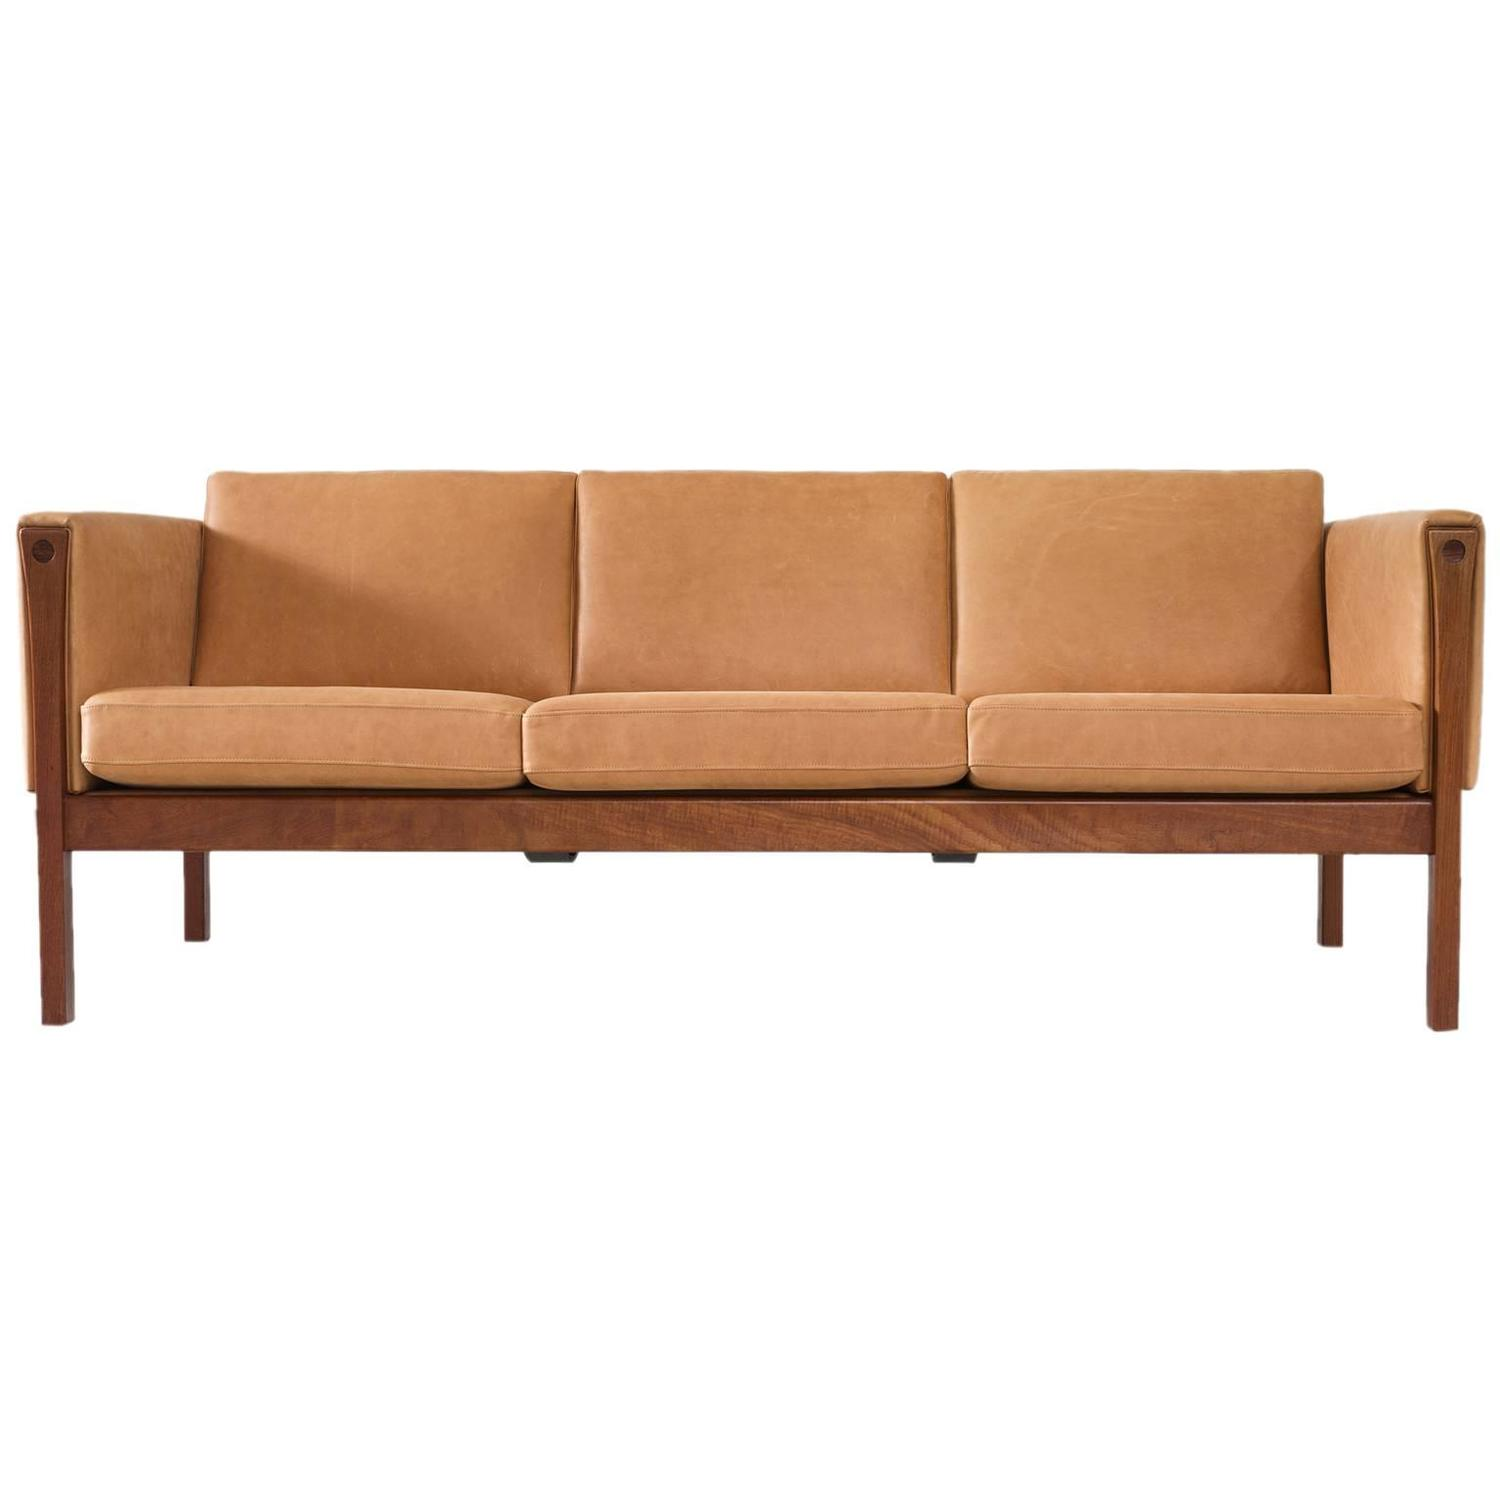 hans wegner reupholstered three seat sofa in cognac leather for sale at 1stdibs. Black Bedroom Furniture Sets. Home Design Ideas